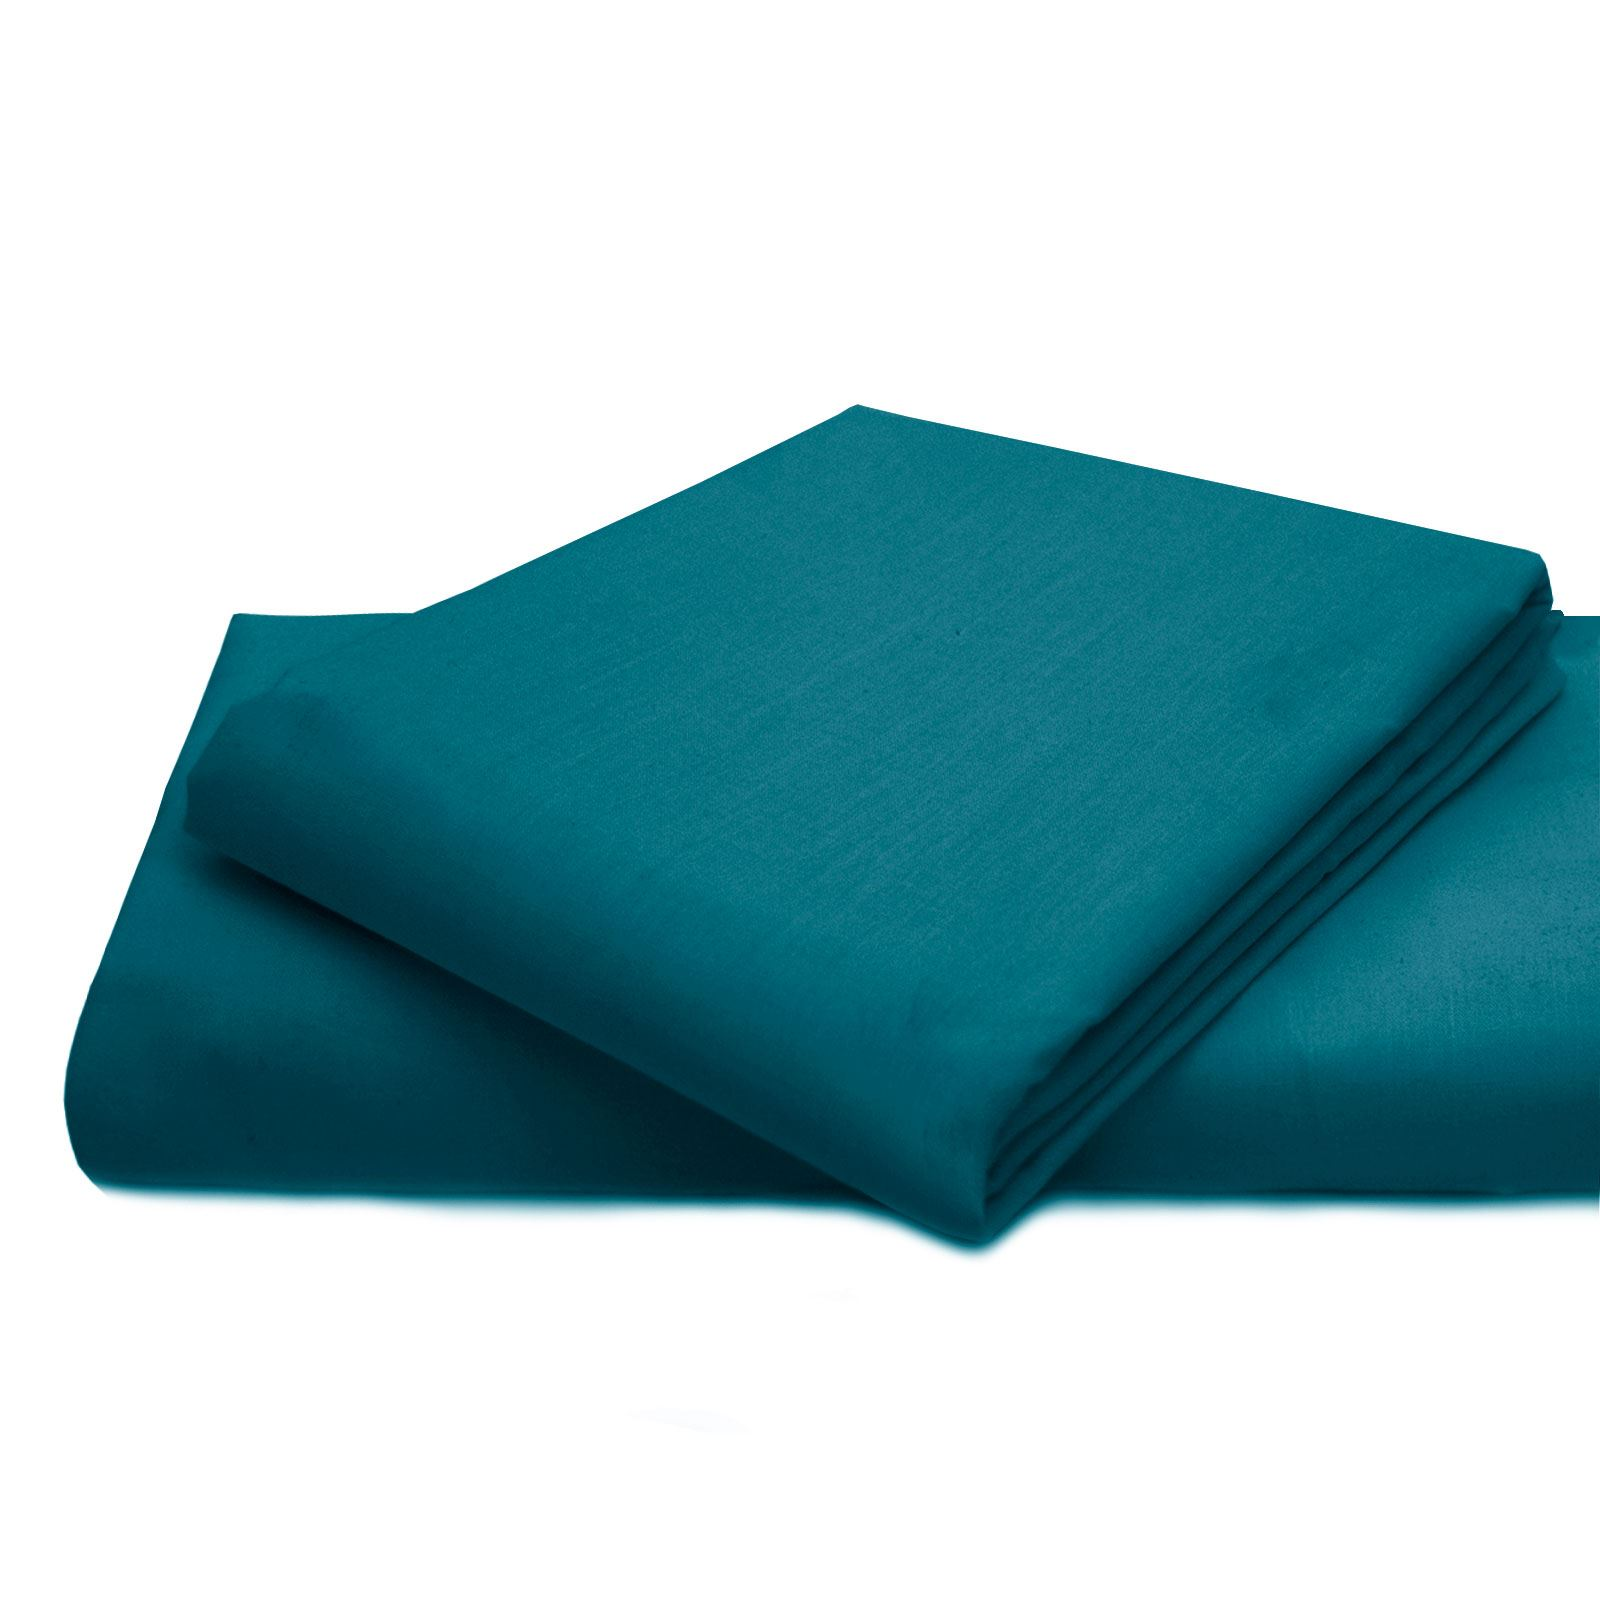 Plain Valance Bed Sheets Frill Mattress Cover Beddings